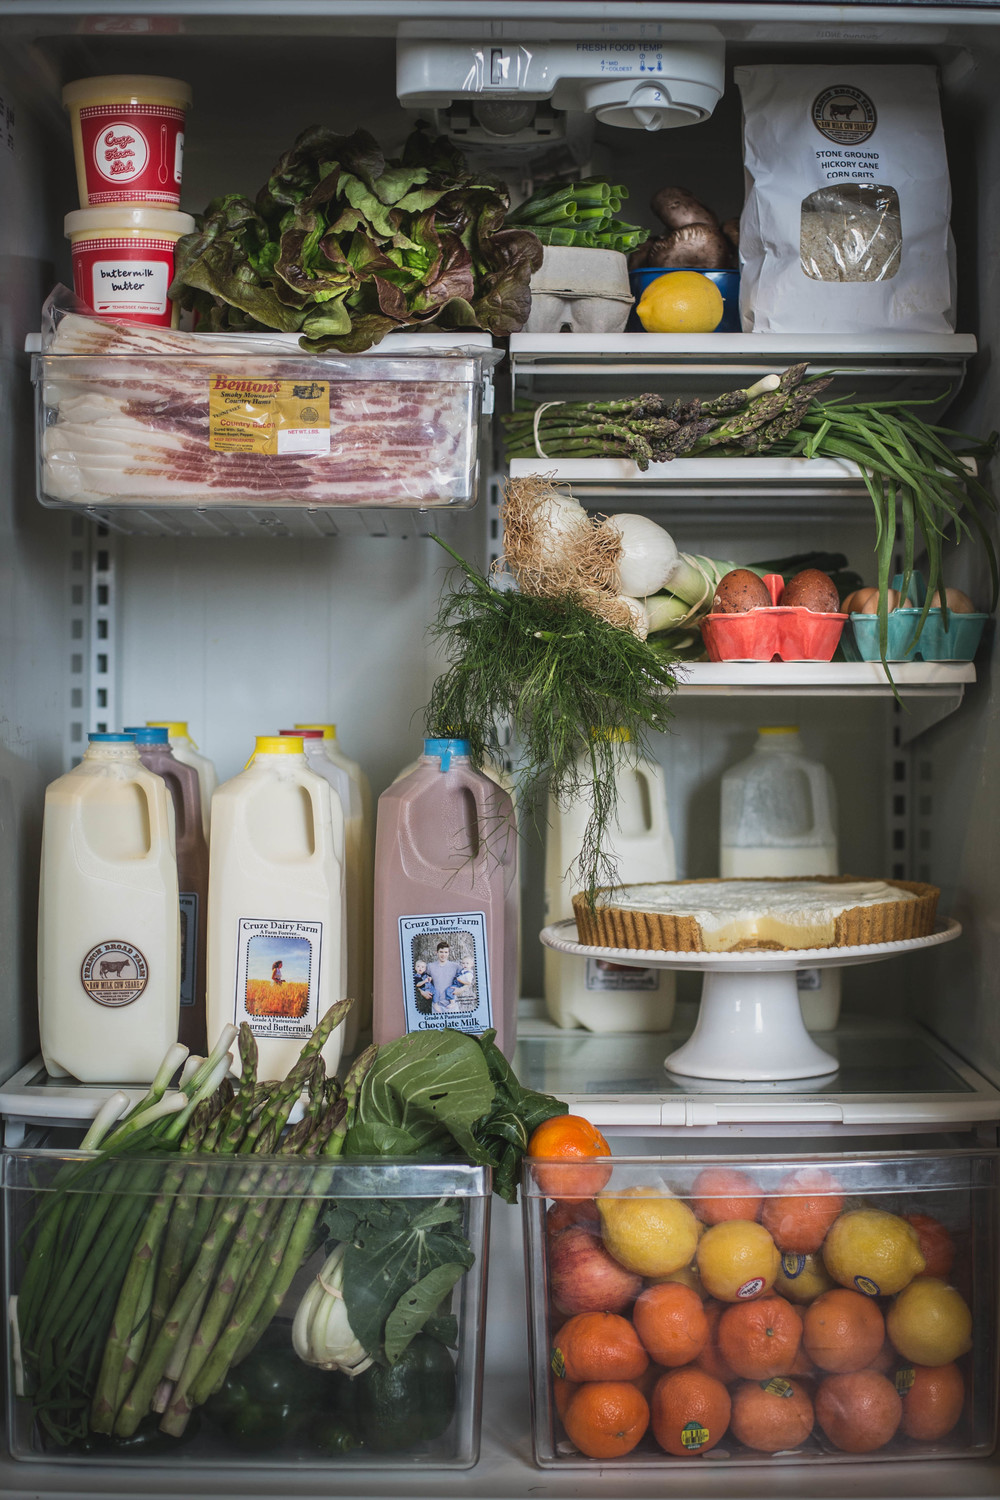 Thanks for stocking your fridge with our dairy products! photo credit: http://localmilkblog.com